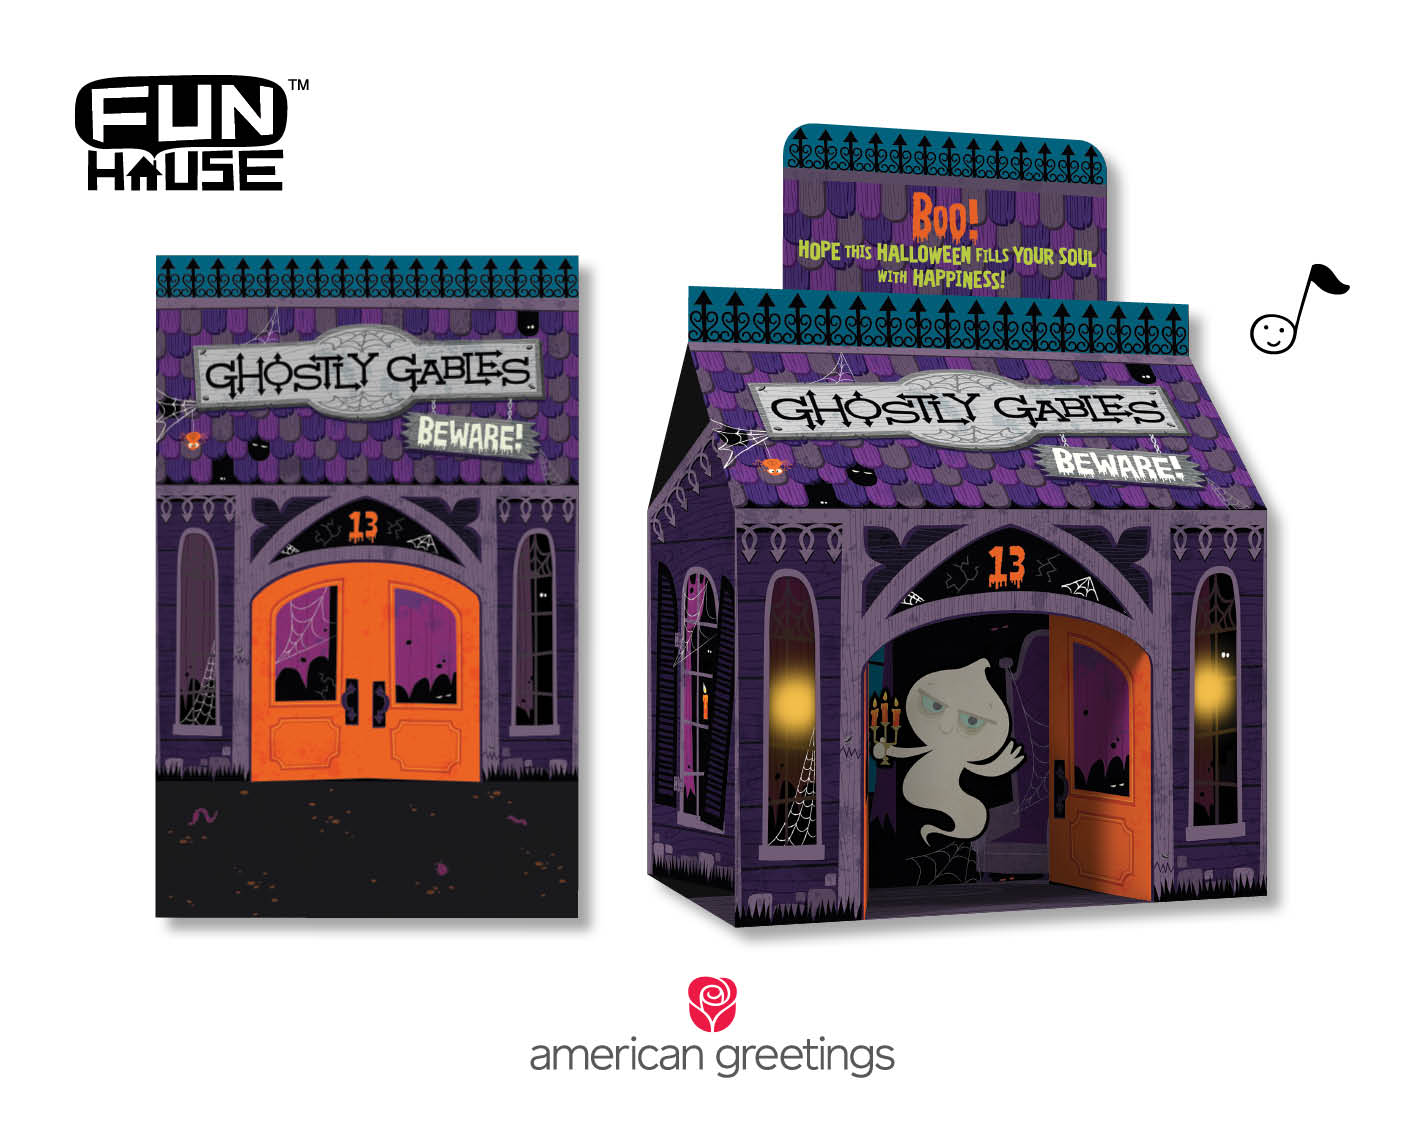 Bring The House Down This Halloween With New Fun Housetm Cards